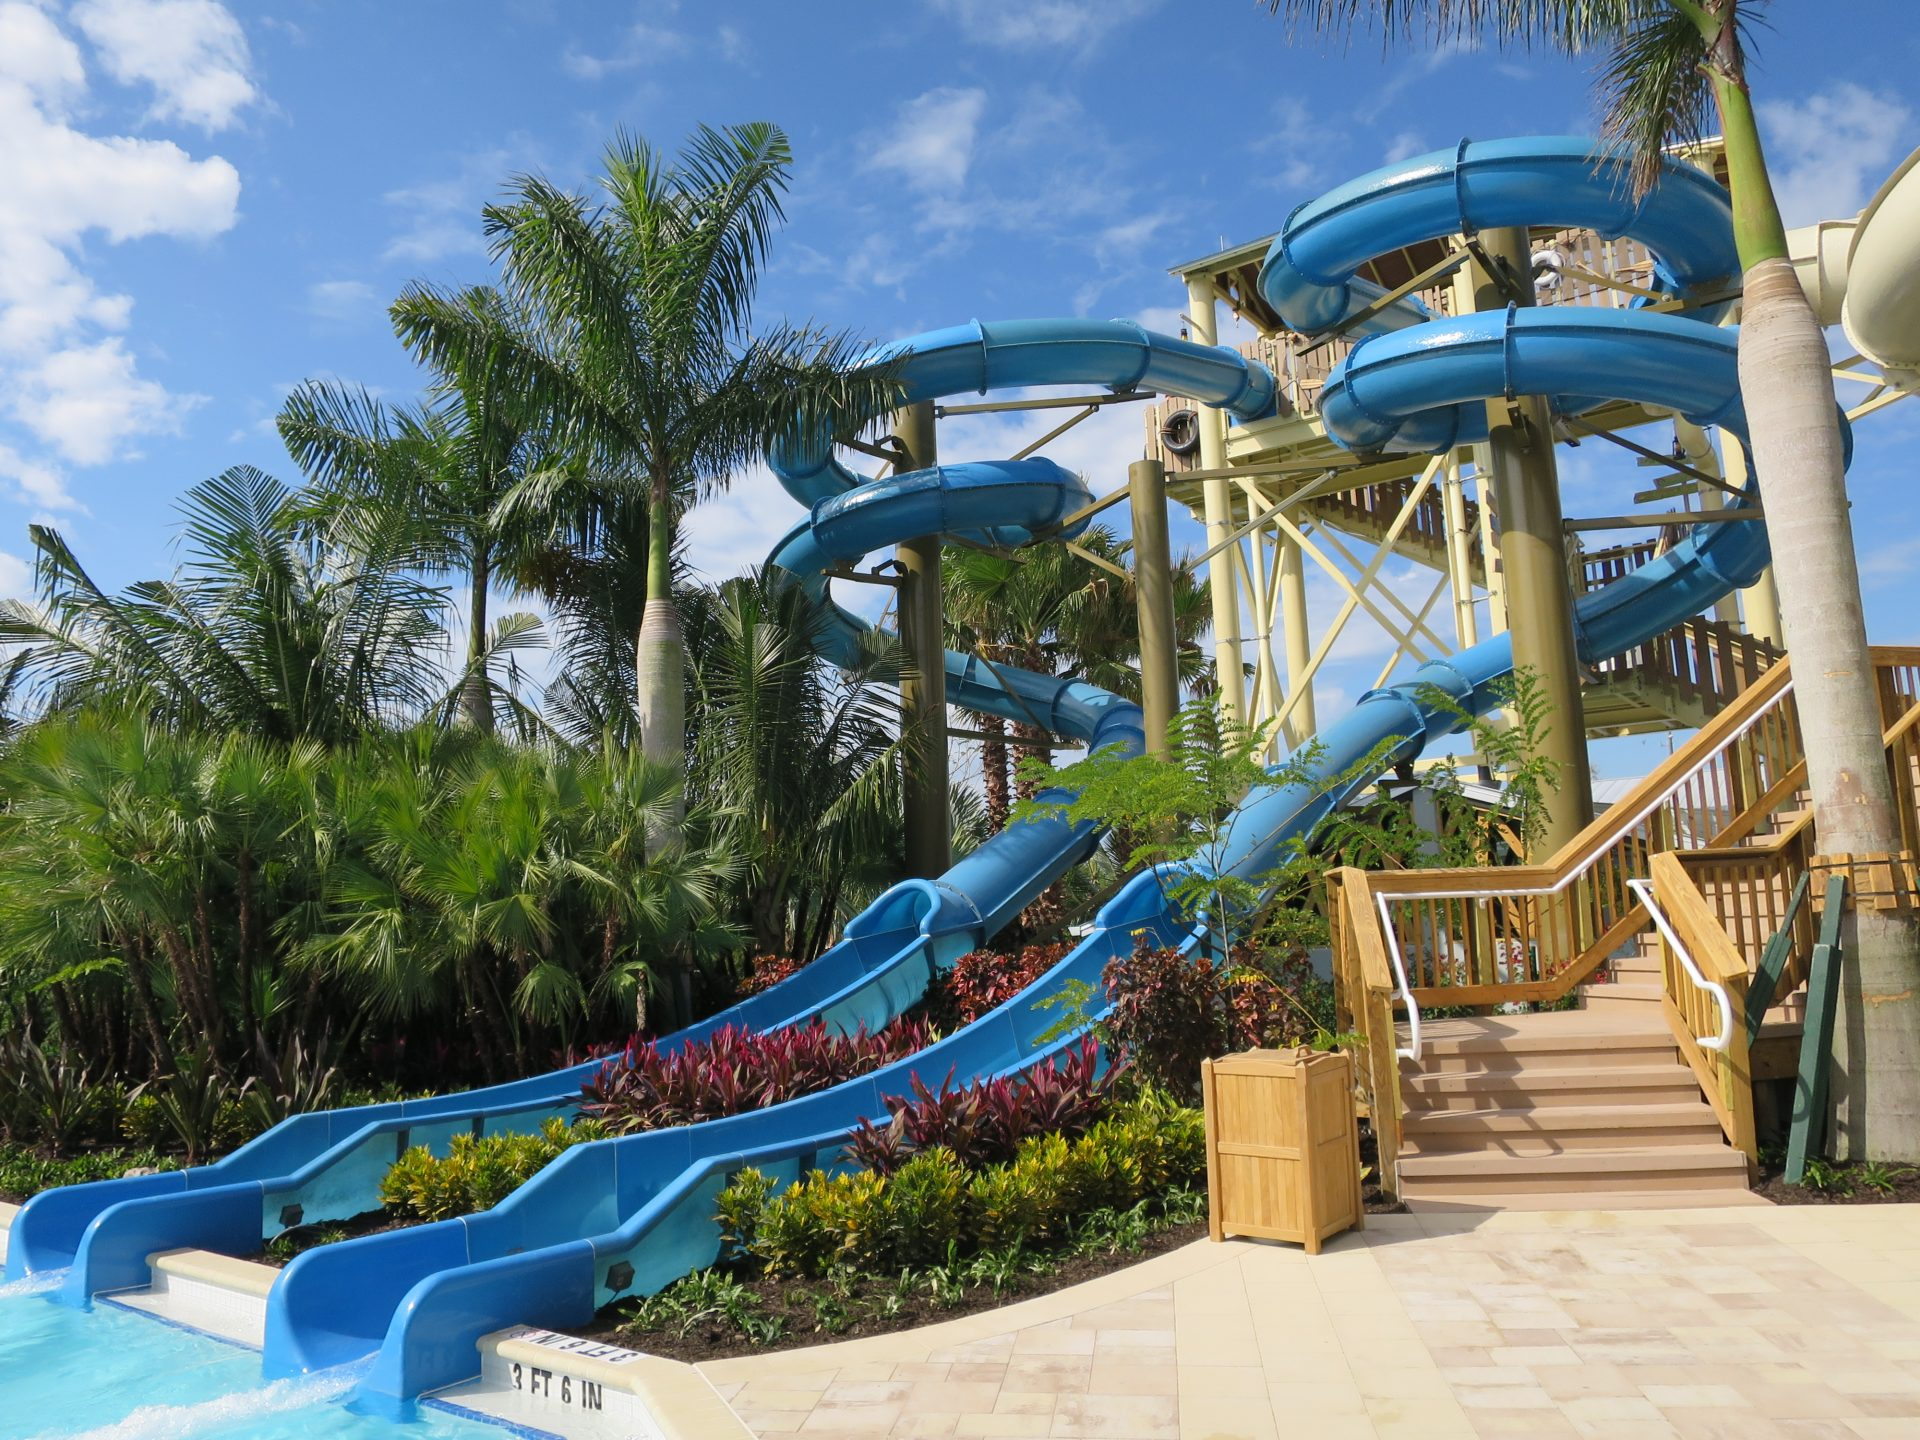 Hyatt Regency Coconut Point slide tower empties into lazy river designed by Martin Aquatic